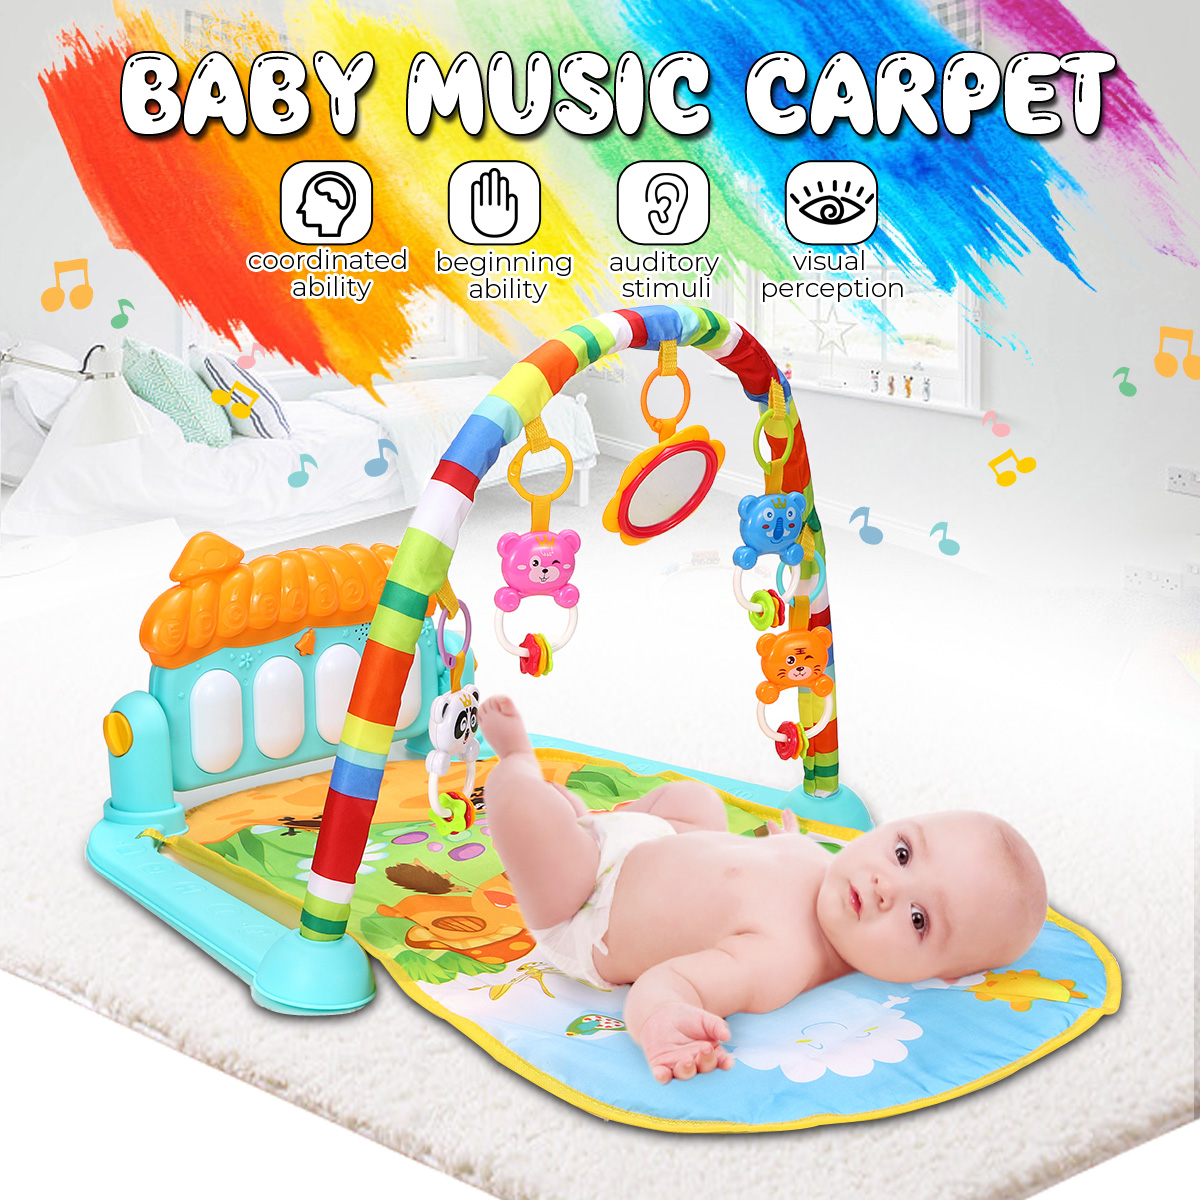 Baby Play Mat Rug Toys Crawling and Kids Developing Music Game Piano Keyboard